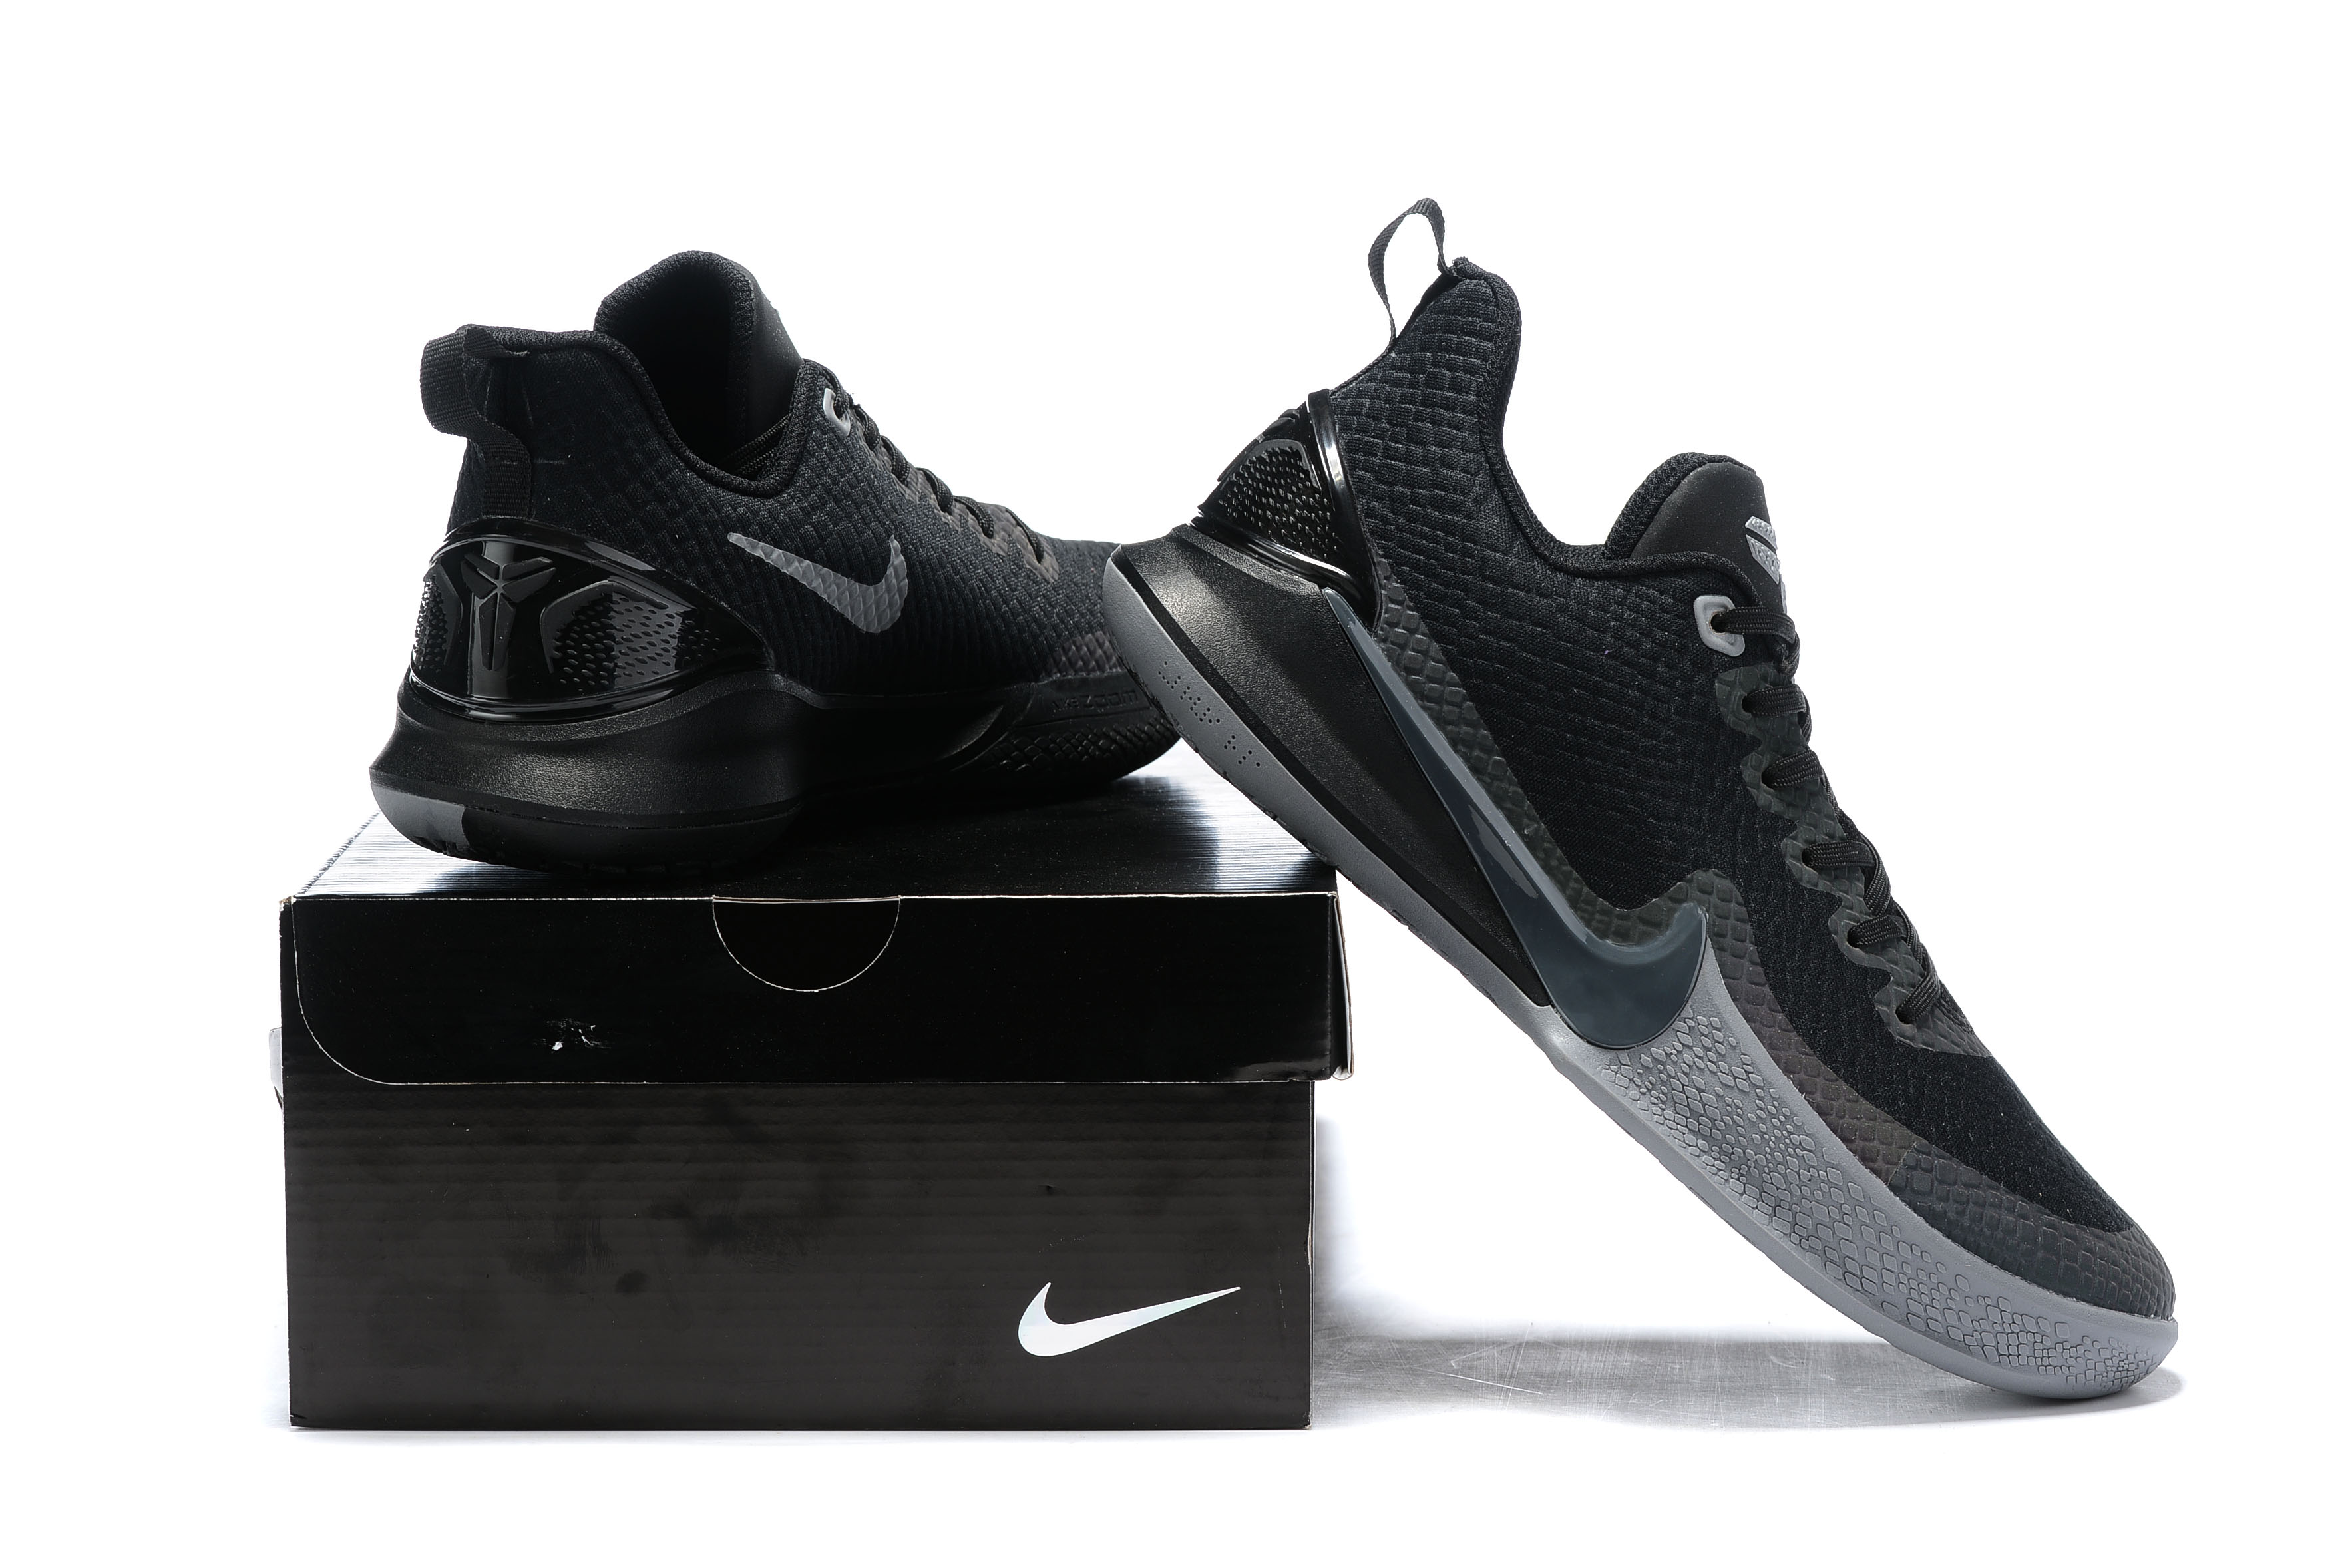 2019 Nike Kobe Mamba All Black Shoes